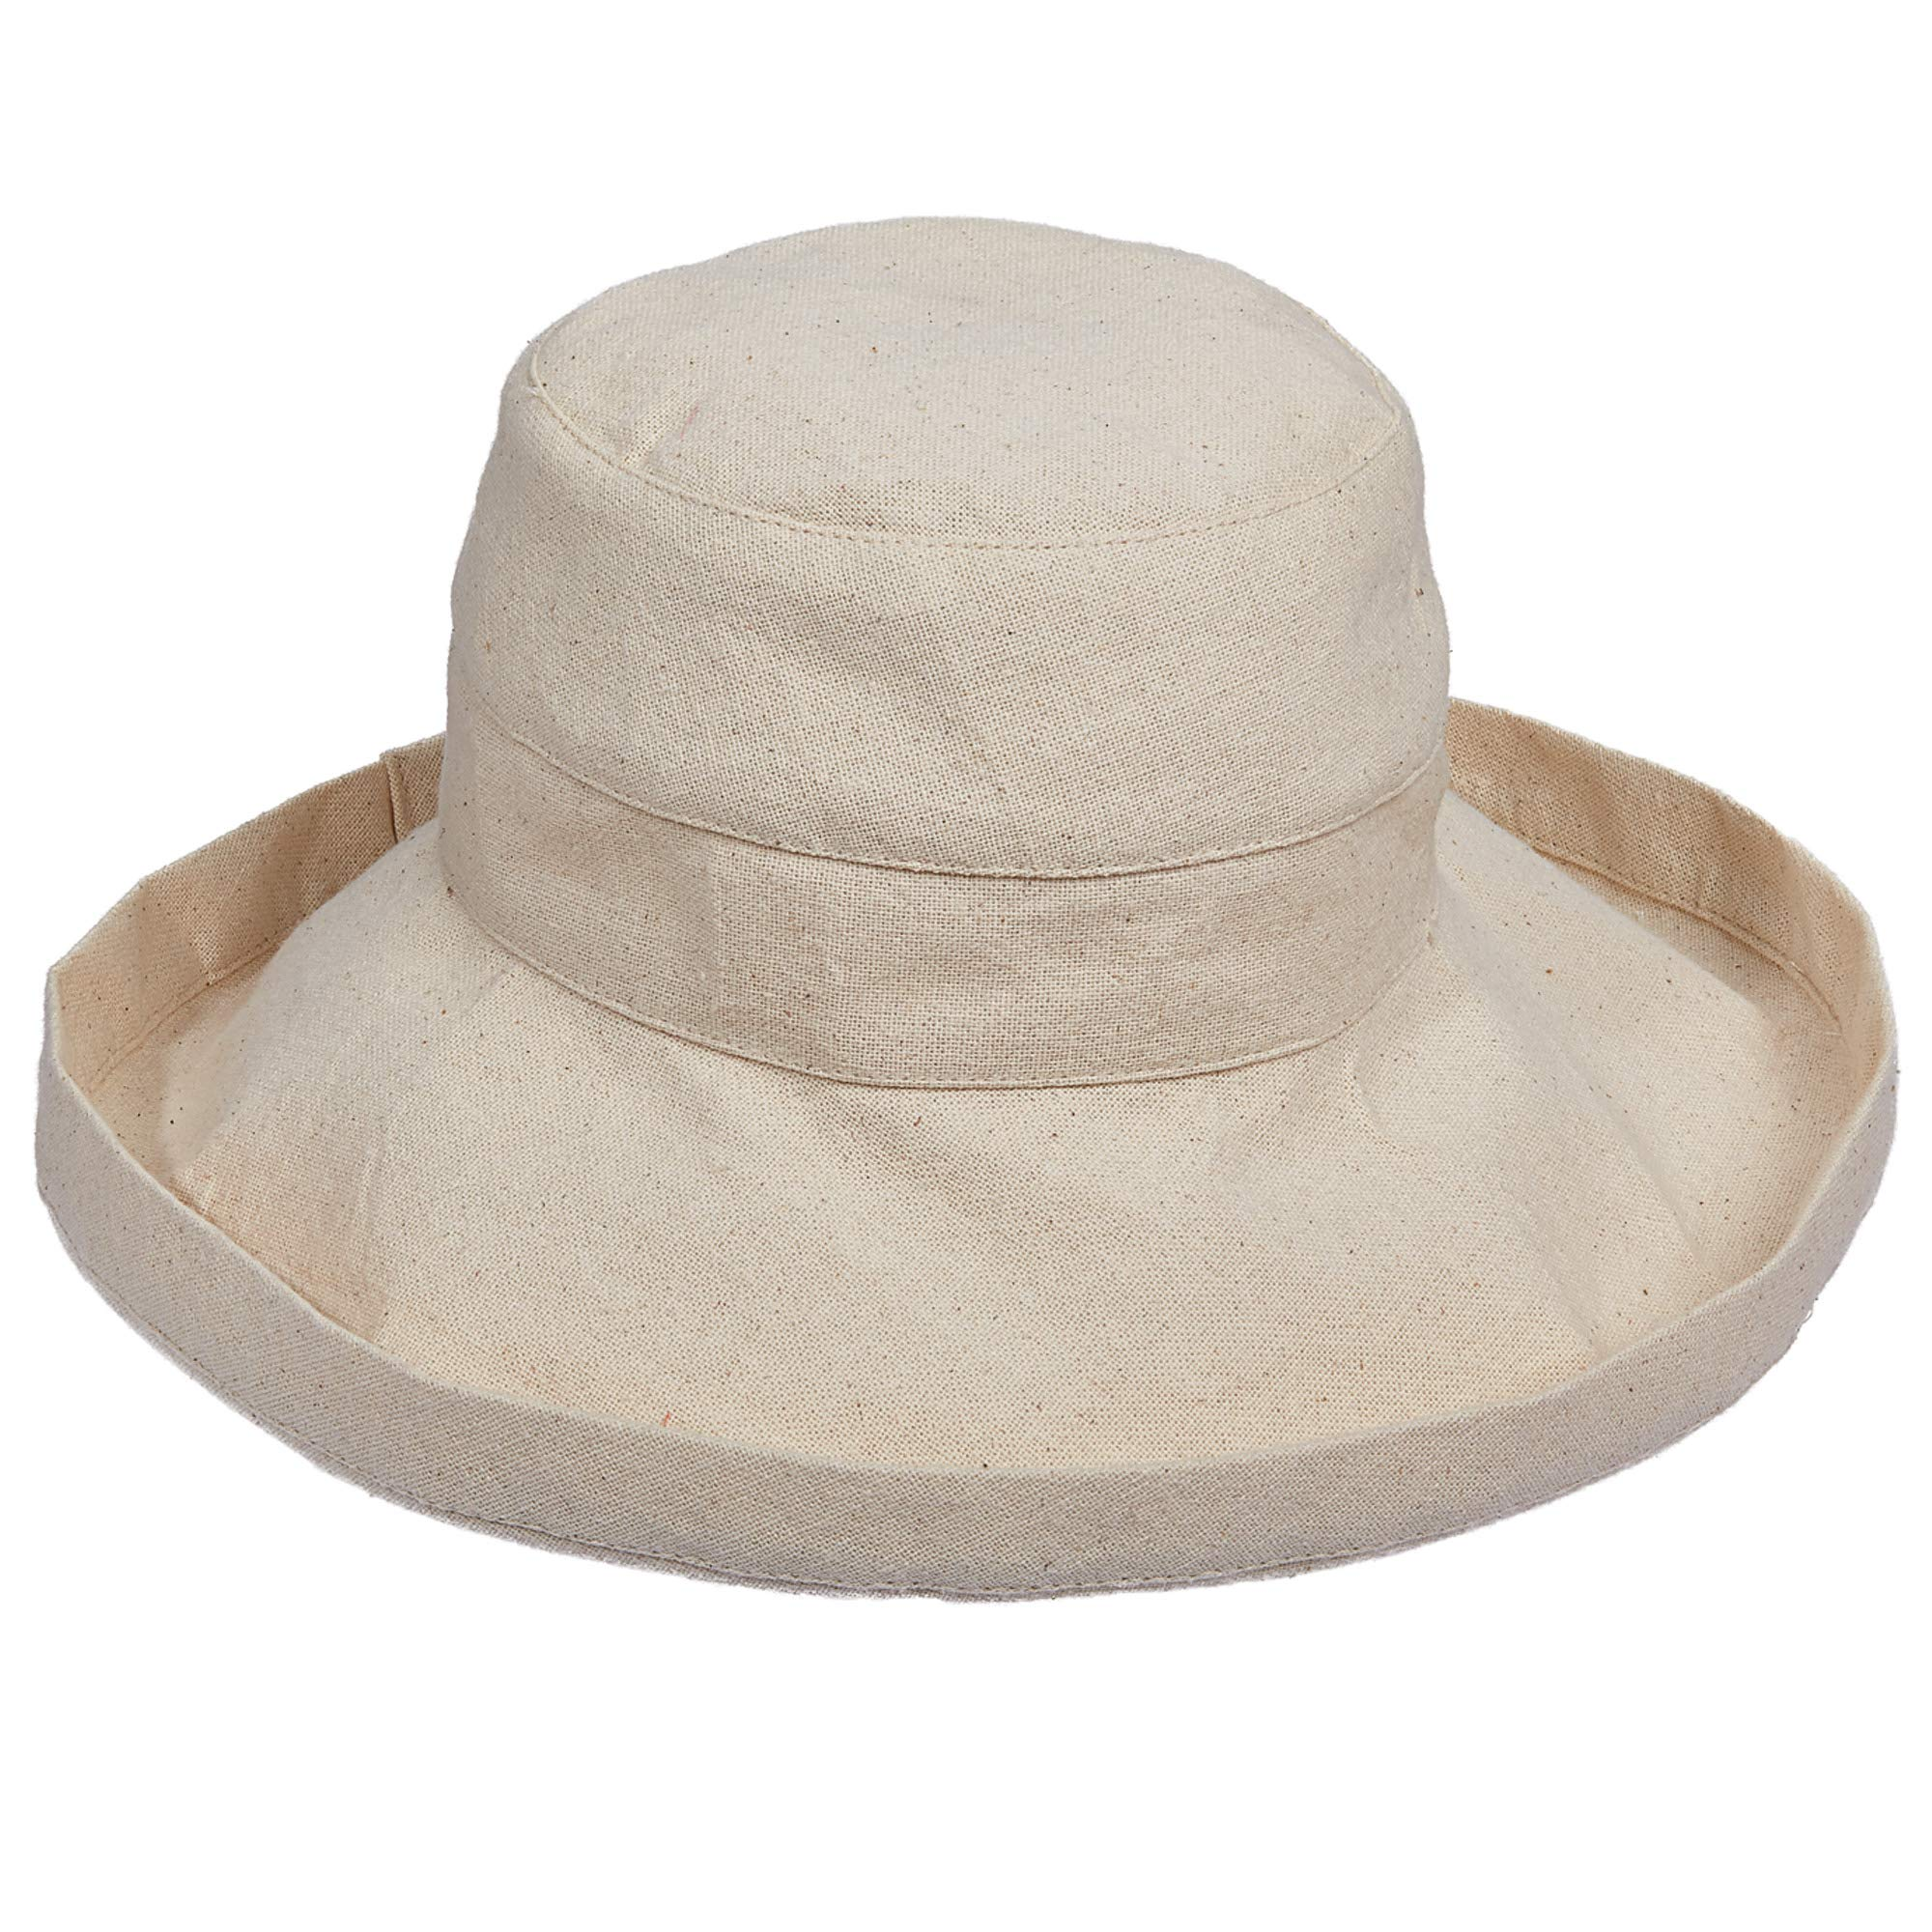 Scala Women's Cotton Hat with Inner Drawstring and Upf 50+ Rating,Linen,One Size by SCALA